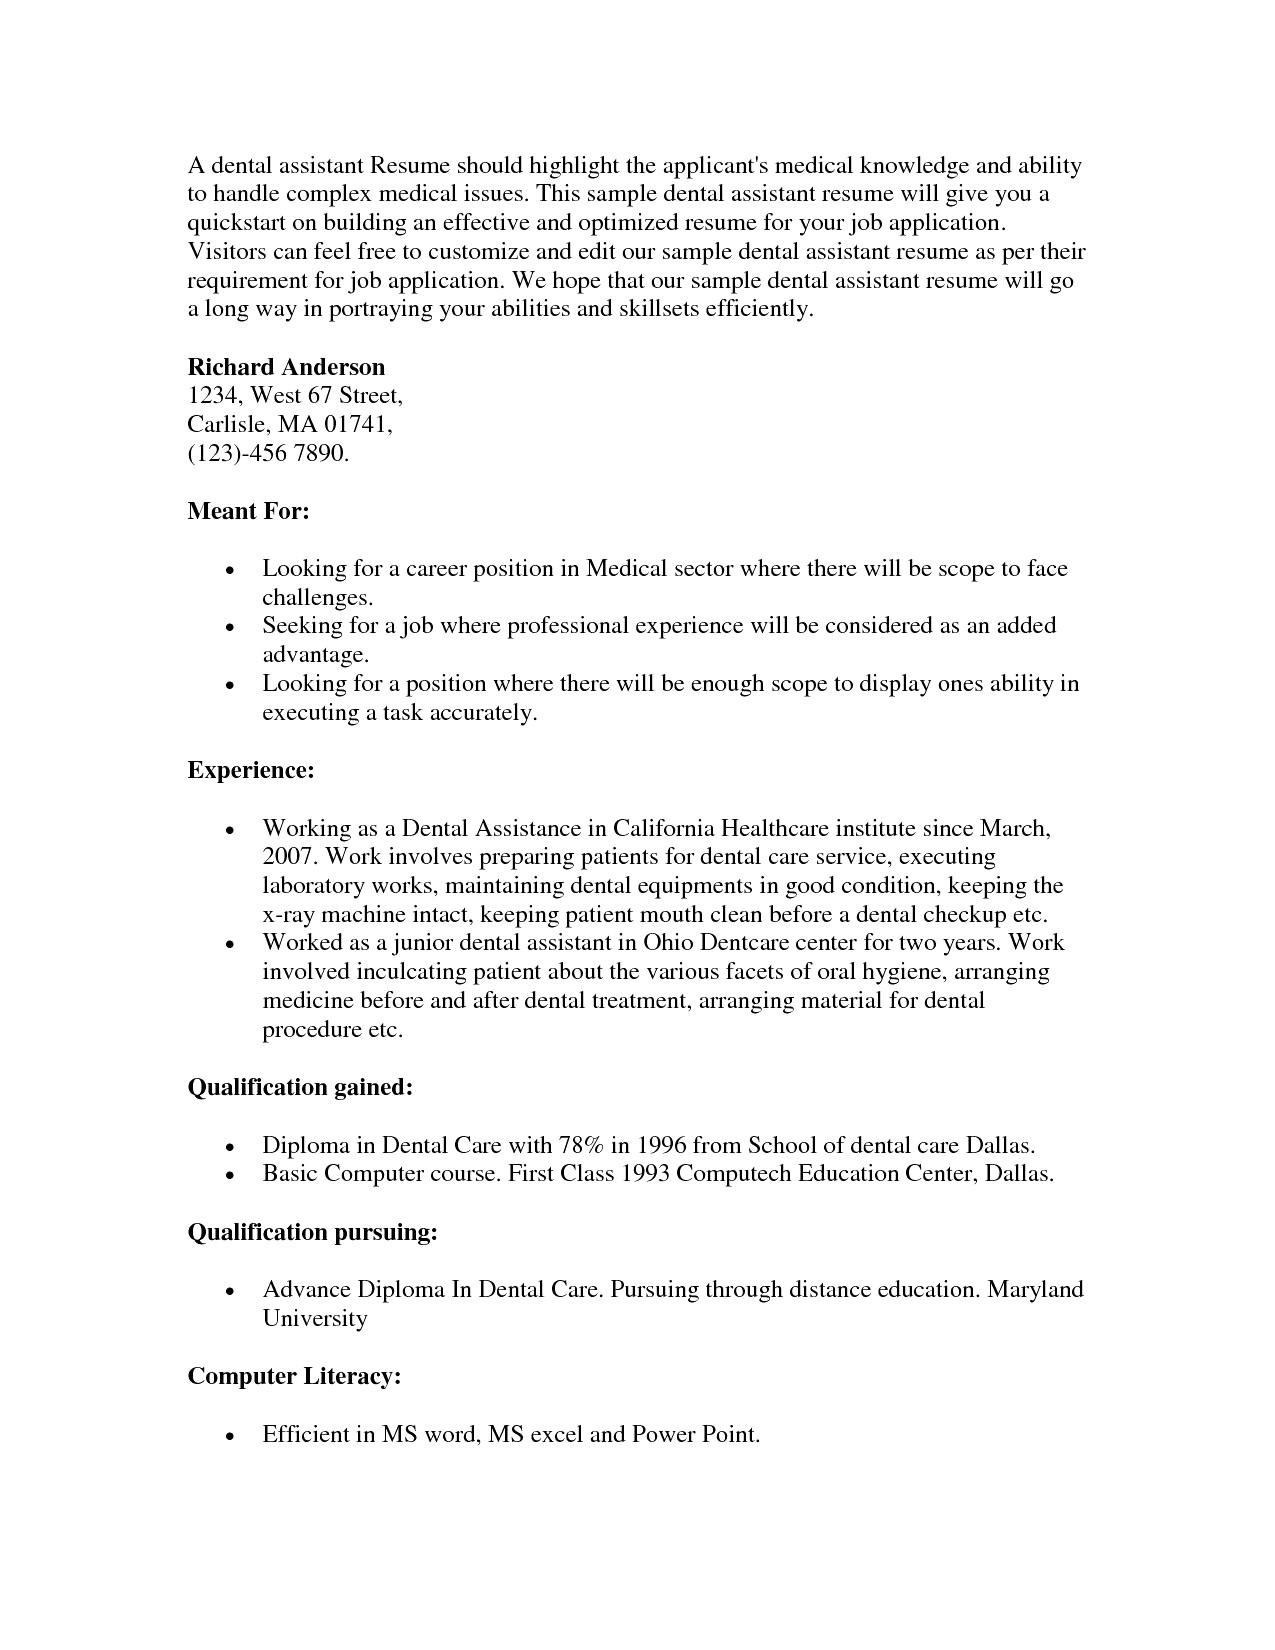 Dental assistant Cover Letter Template - 42 Concepts Dental assistant Resume